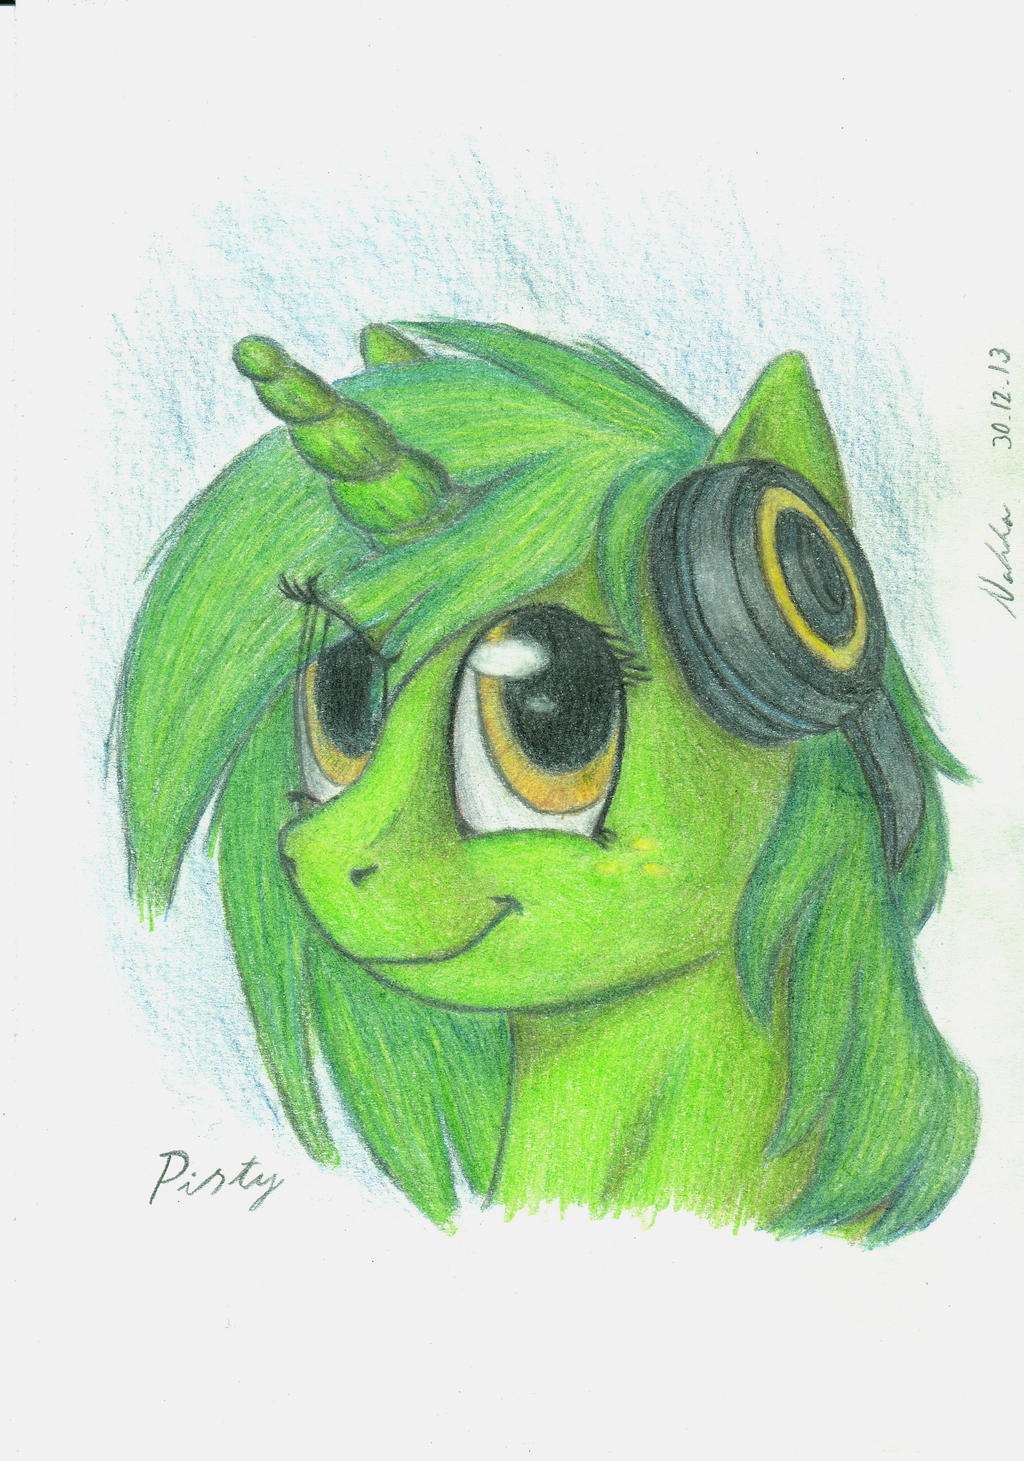 Pisty Portrait by Poninnahka